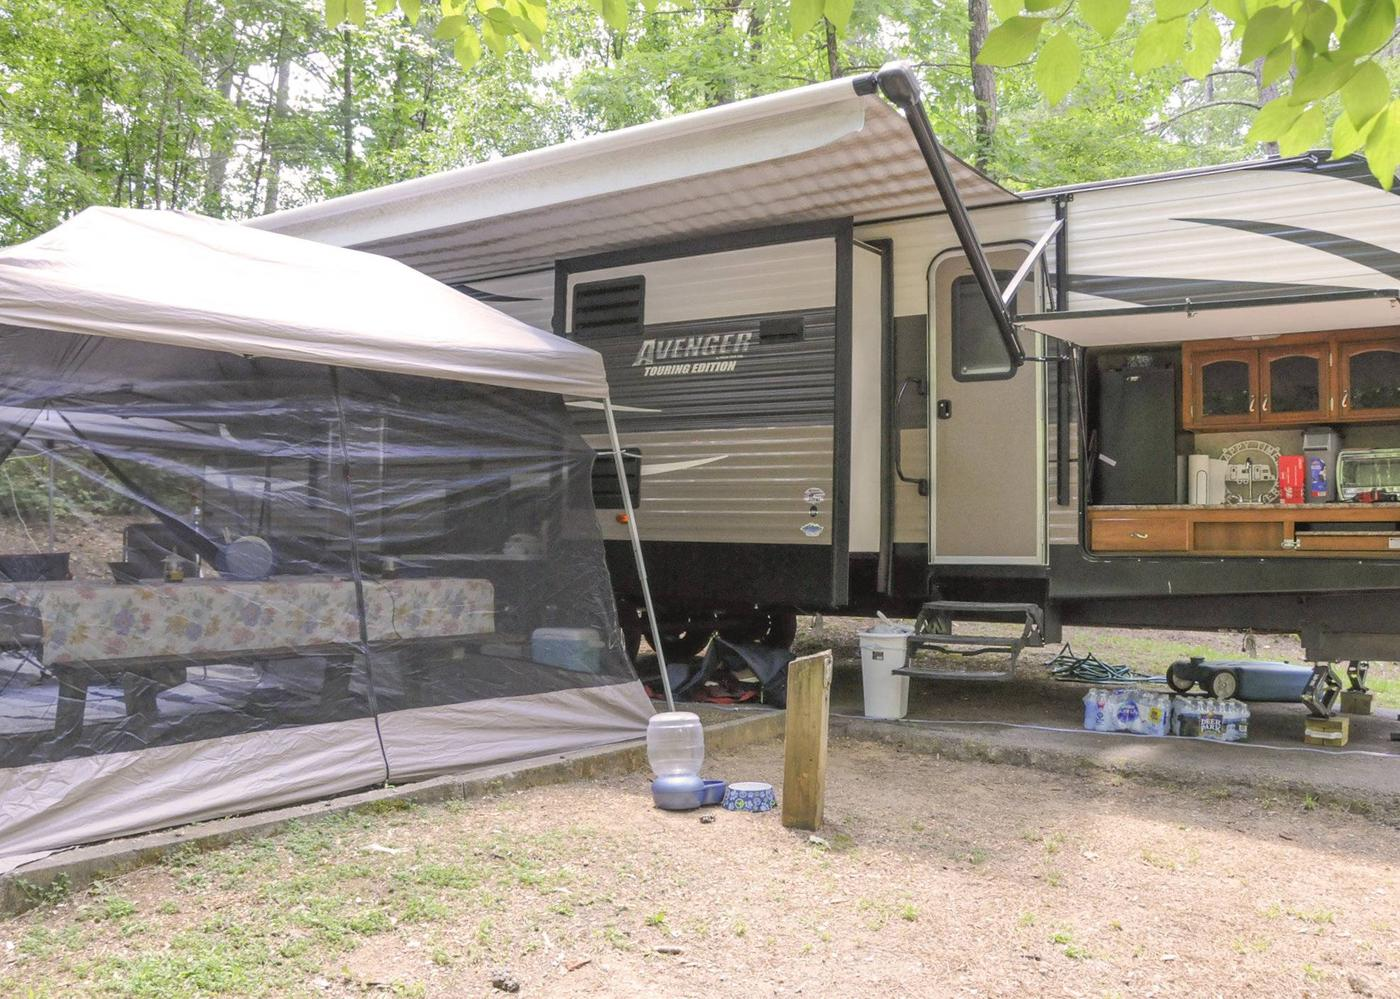 Awning-side clearance, campsite view.McKaskey Creek Campground, campsite 37.